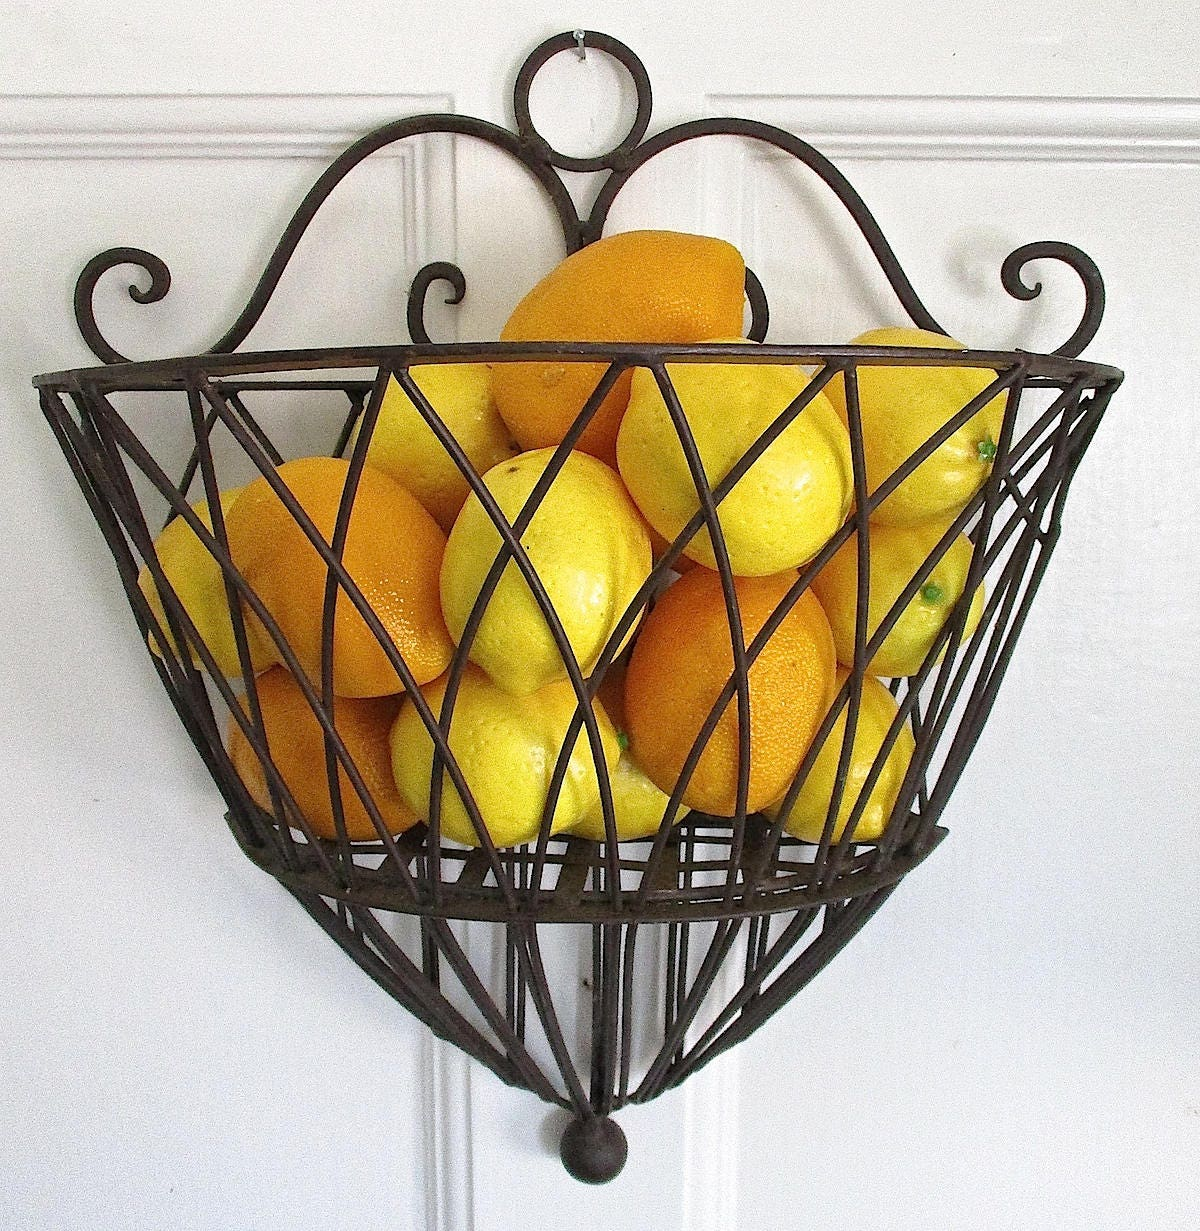 Vintage Country French Style Wrought Iron Wall Basket